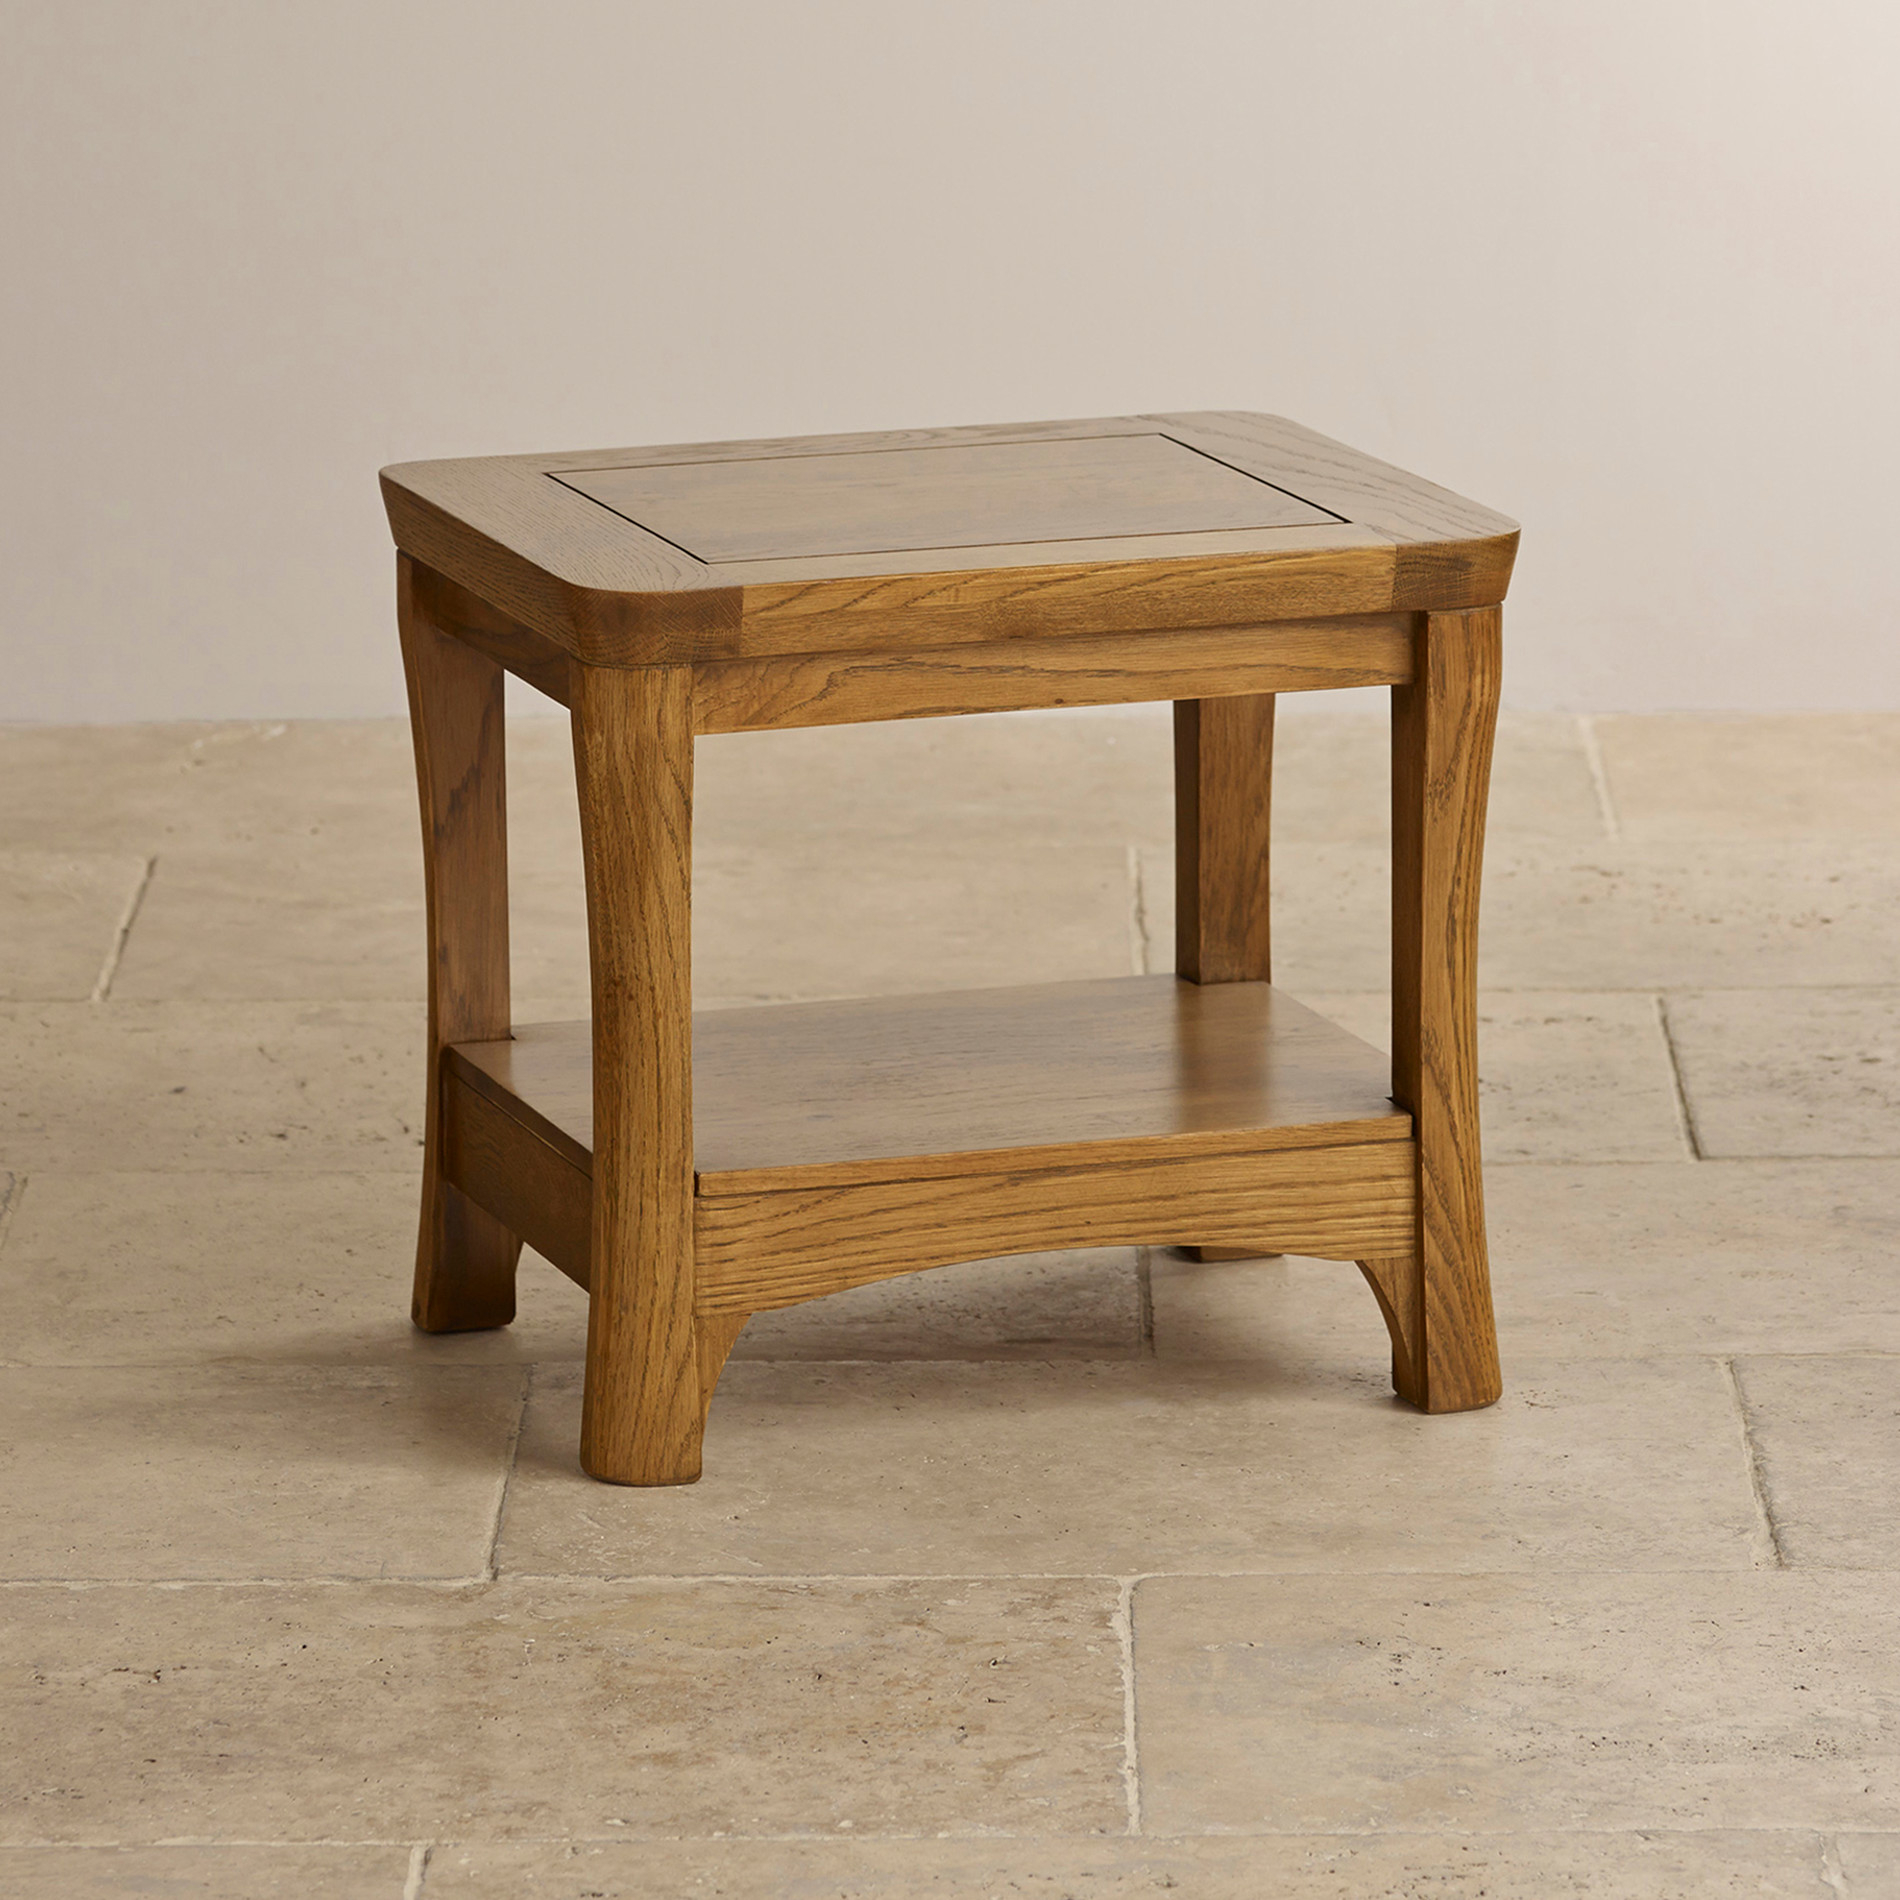 lamp tables orrick lamp table in rustic solid oak | oak furniture land HVBTDMA